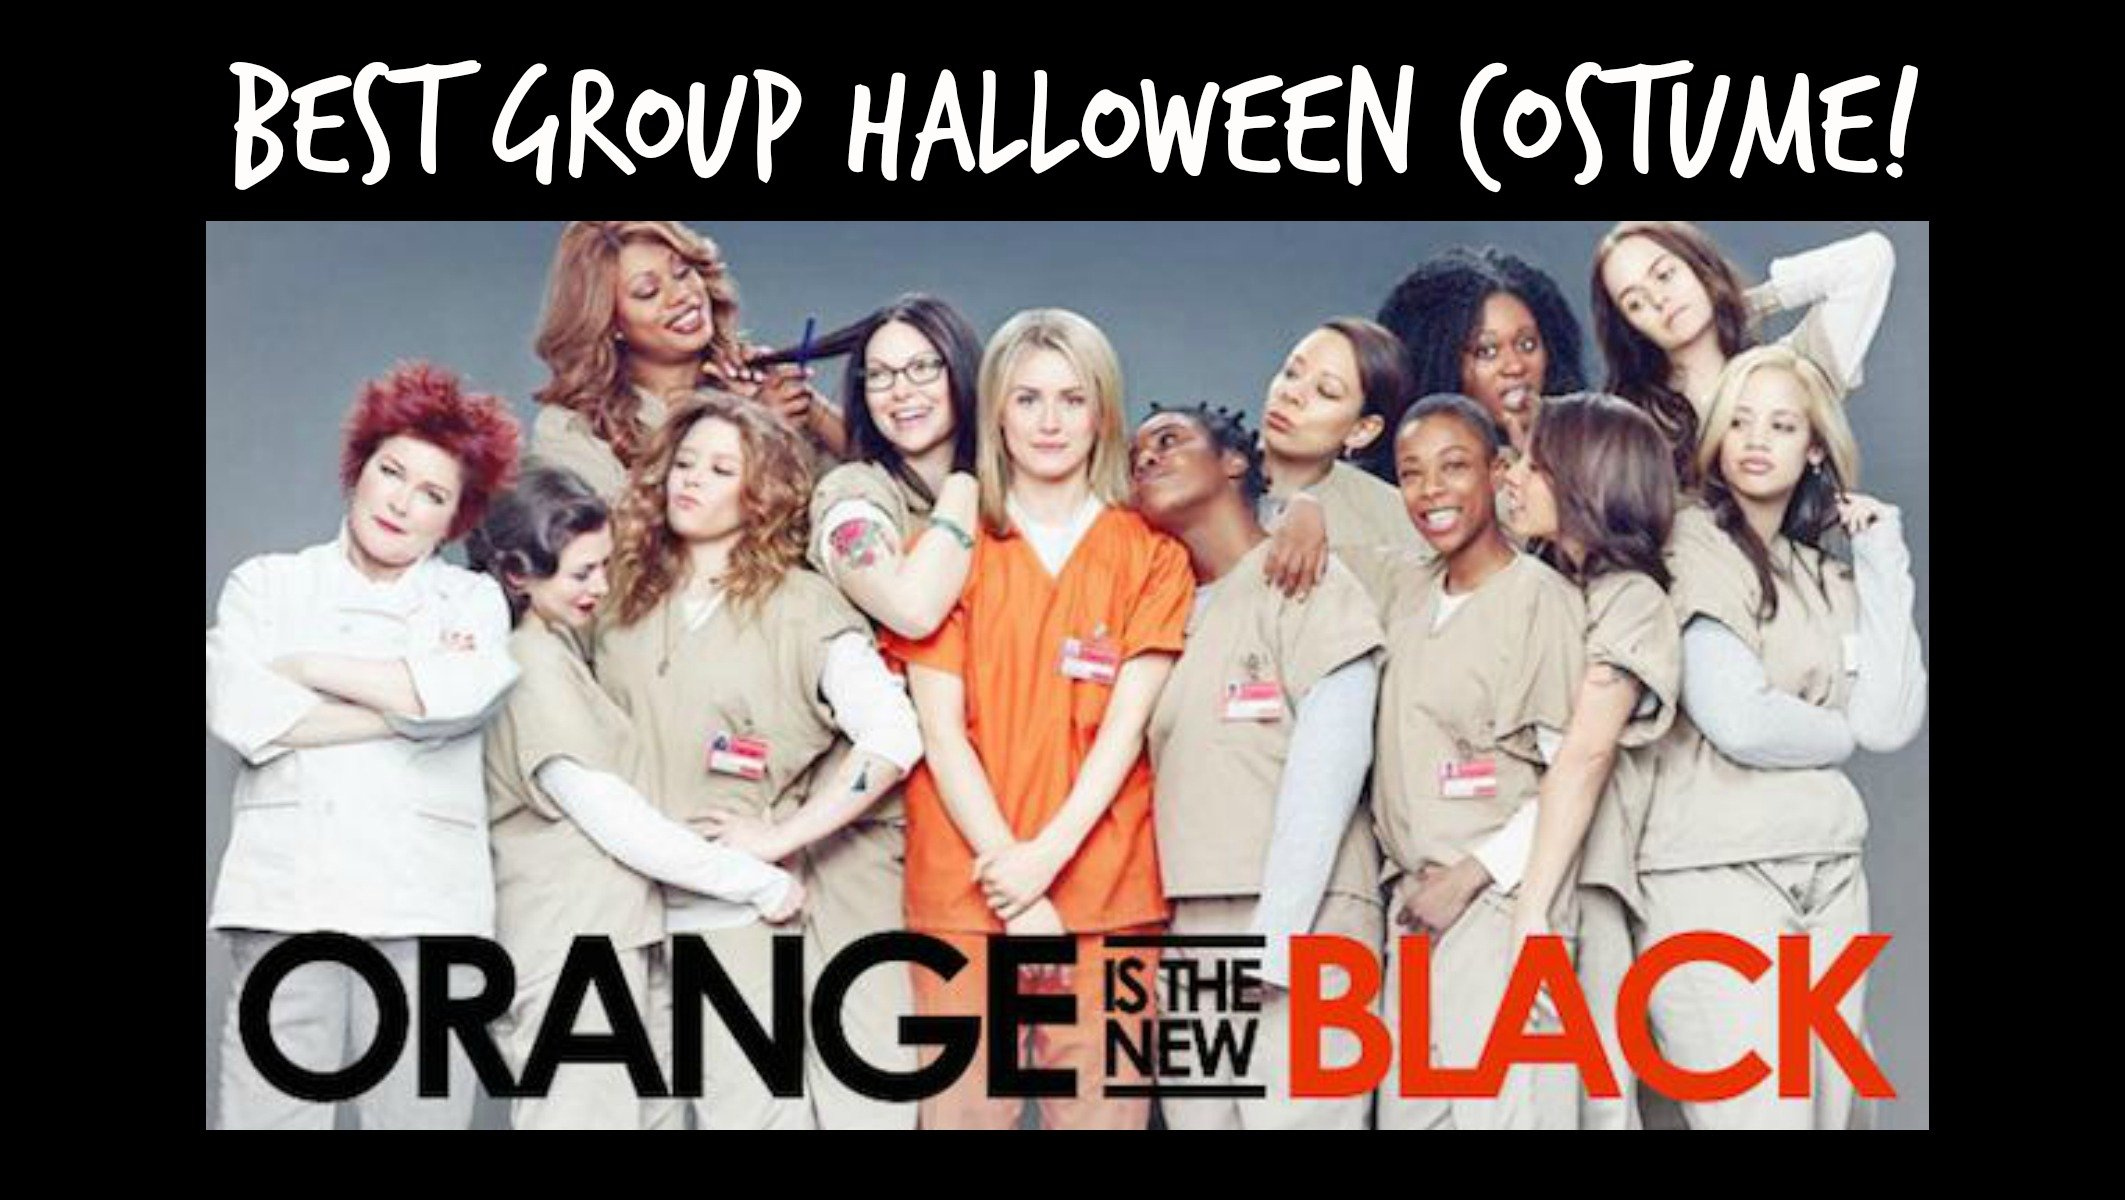 Best Group Halloween Costume Orange is the New Black